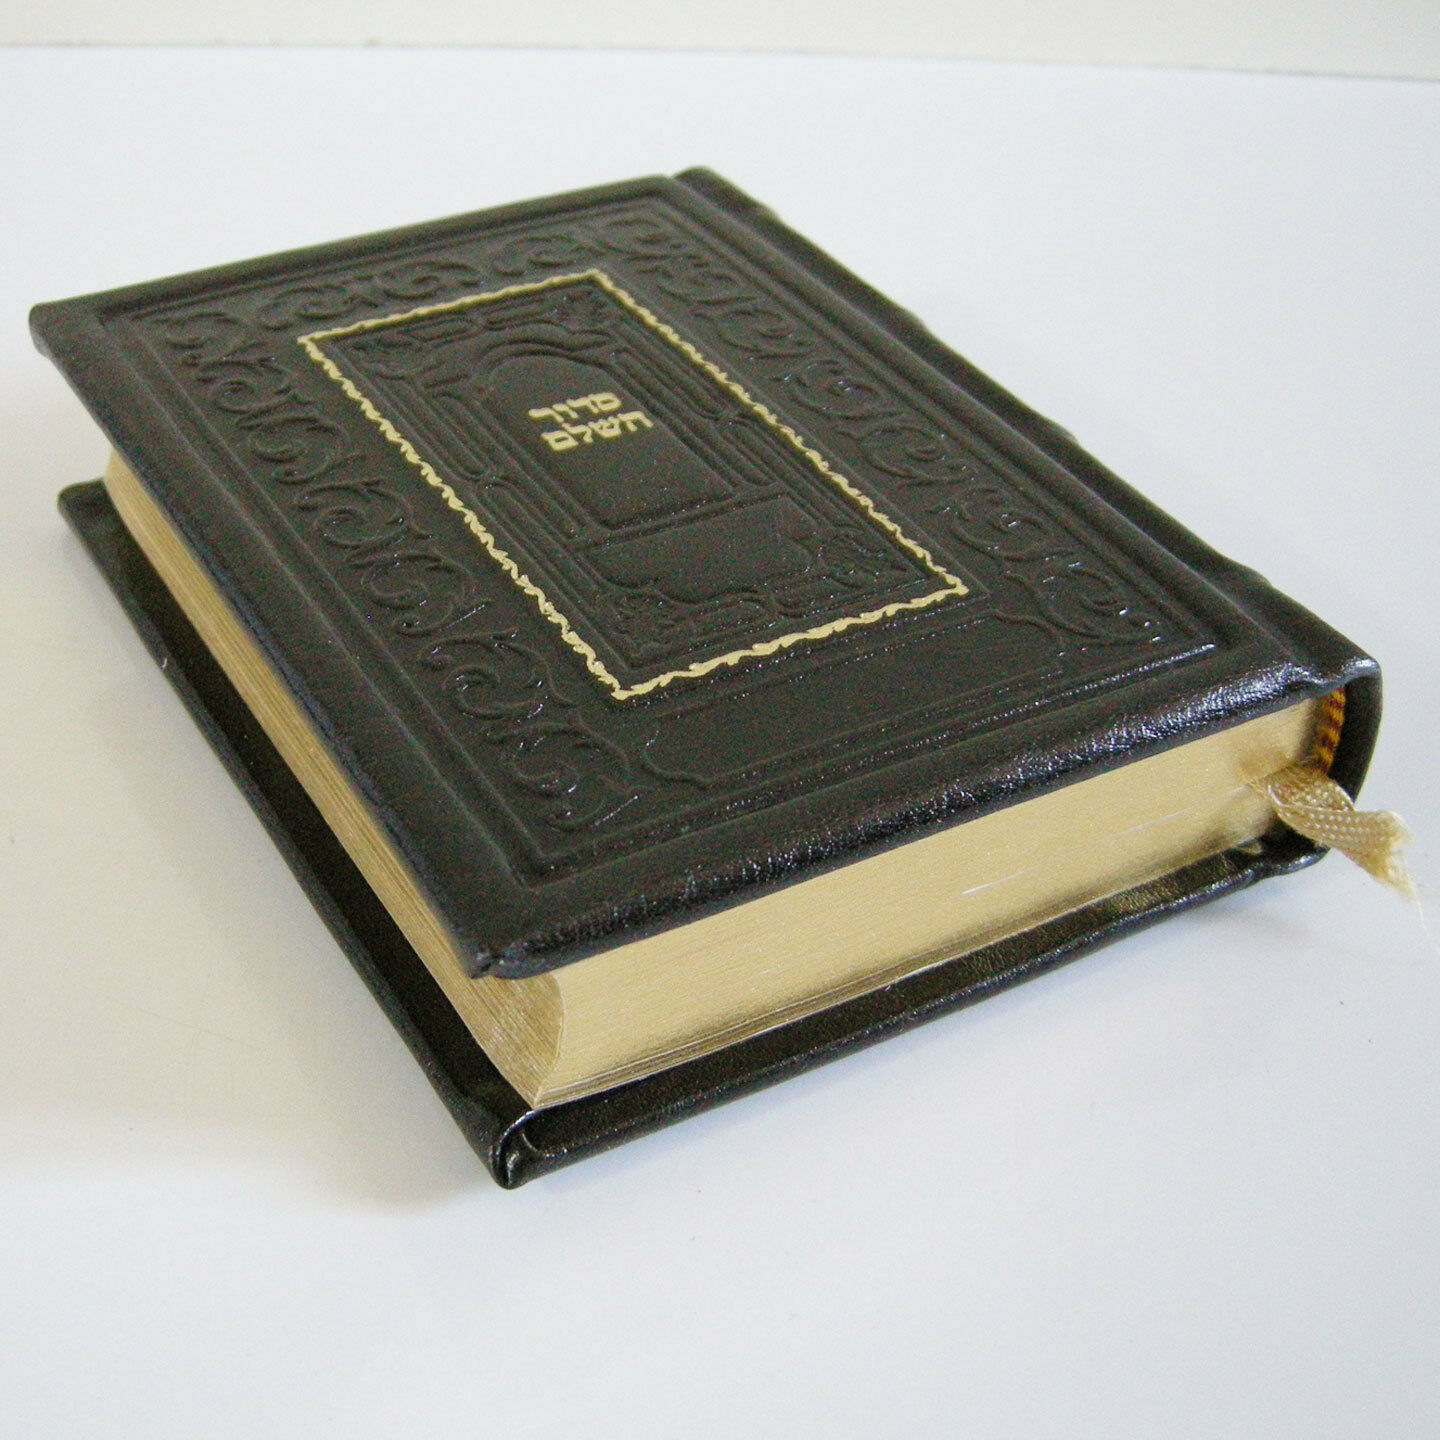 Genuine Leather-Bound Pocket Siddur Gilded Pages Hebrew Handmade Miller Israel (מוכר מישראל) 5